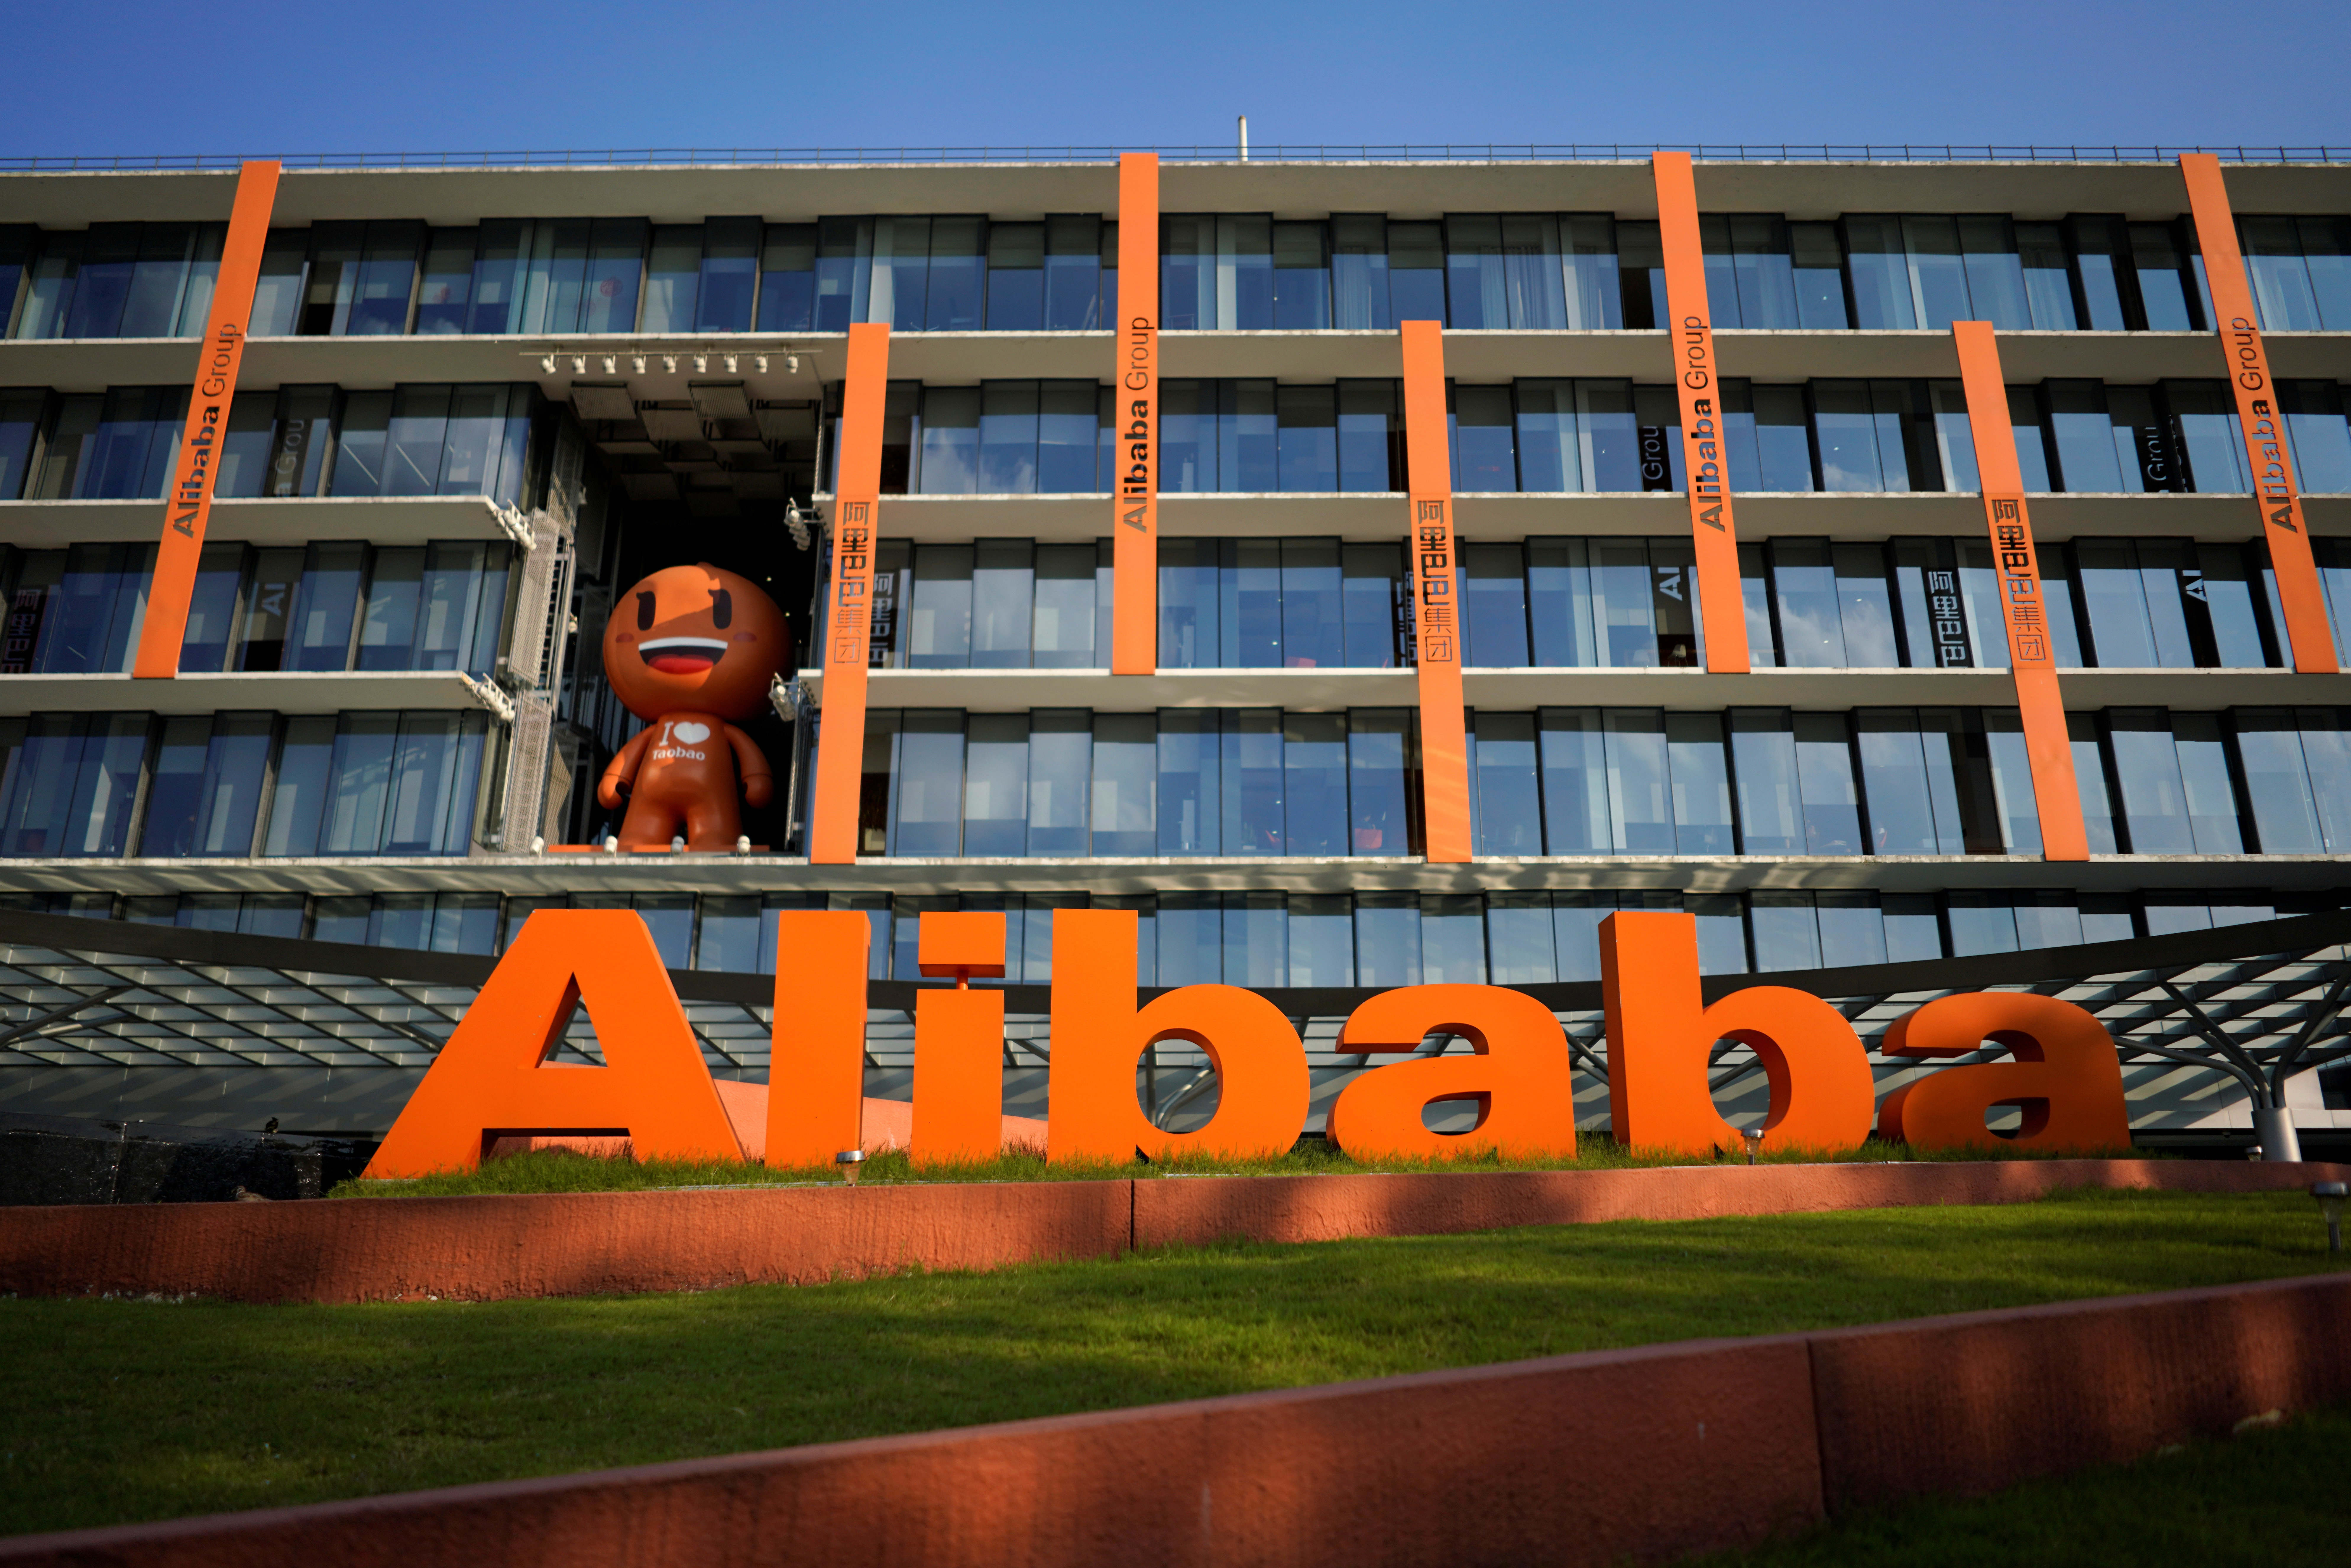 The logo of Alibaba Group is seen at the company's headquarters in Hangzhou, Zhejiang province, China July 20, 2018. REUTERS/Aly Song/File Photo